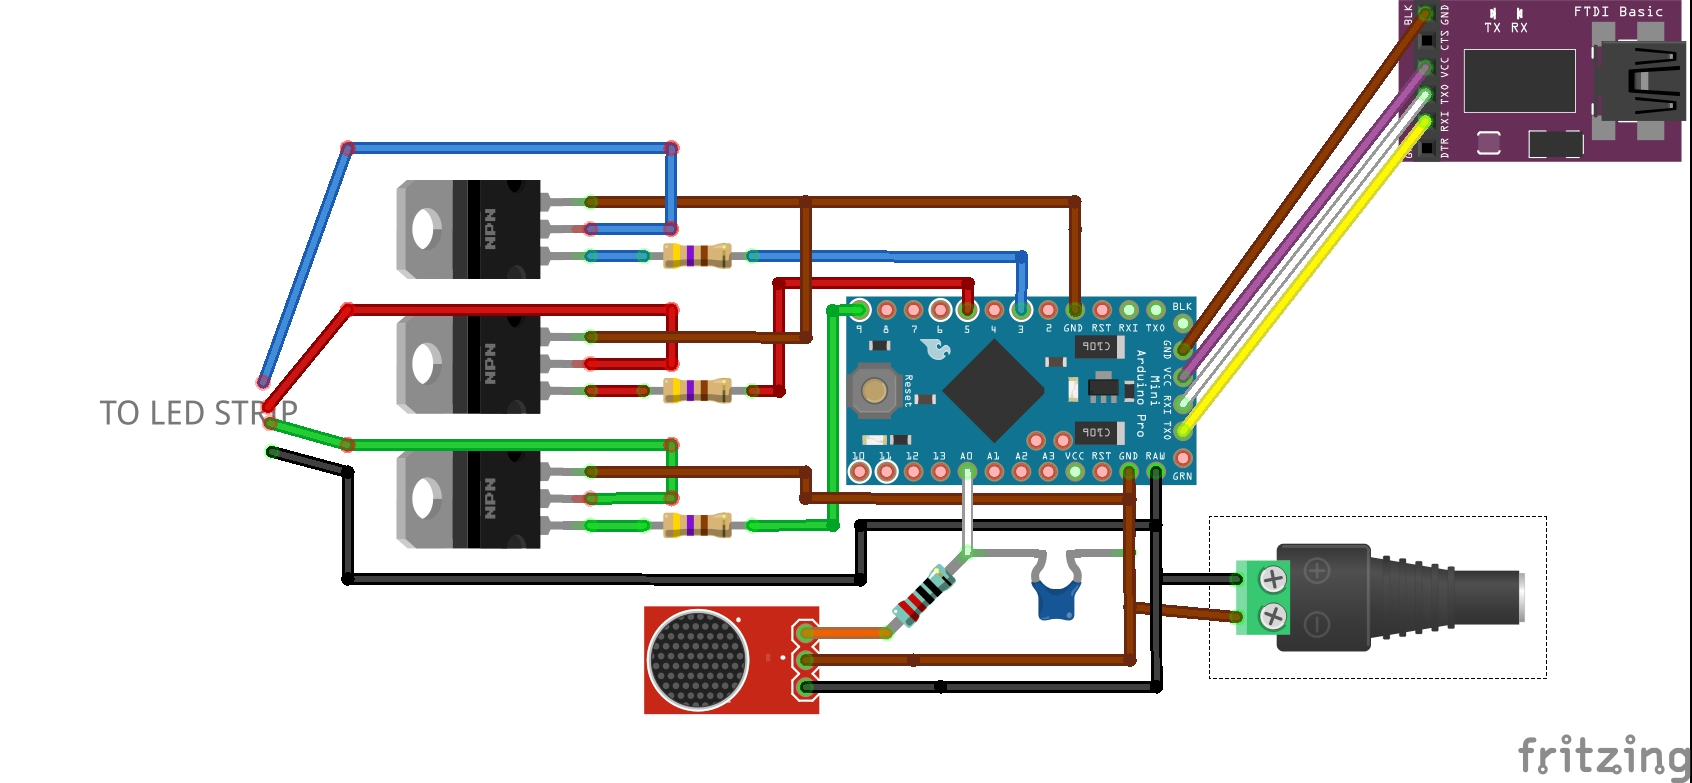 rgb led strip controlled by filtered audio signals using an arduino Arduino Uno R3 Schematic Arduino Mega Schematic Diagram